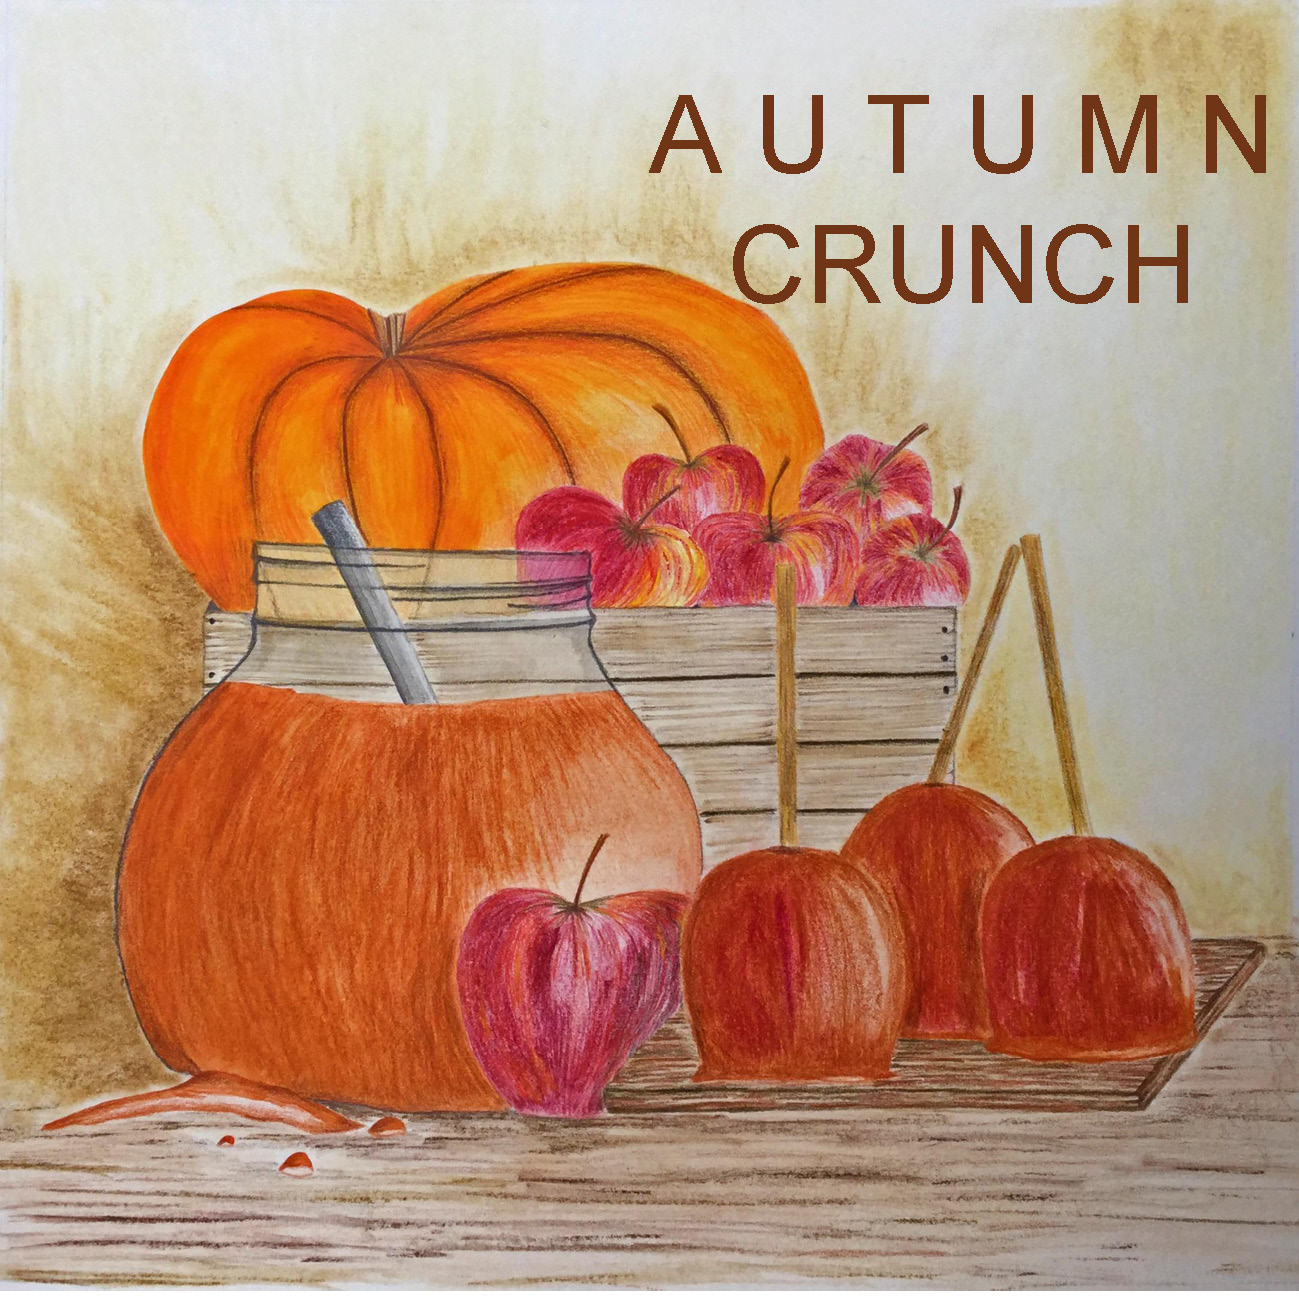 AUTUMN CRUNCH 3.jpg